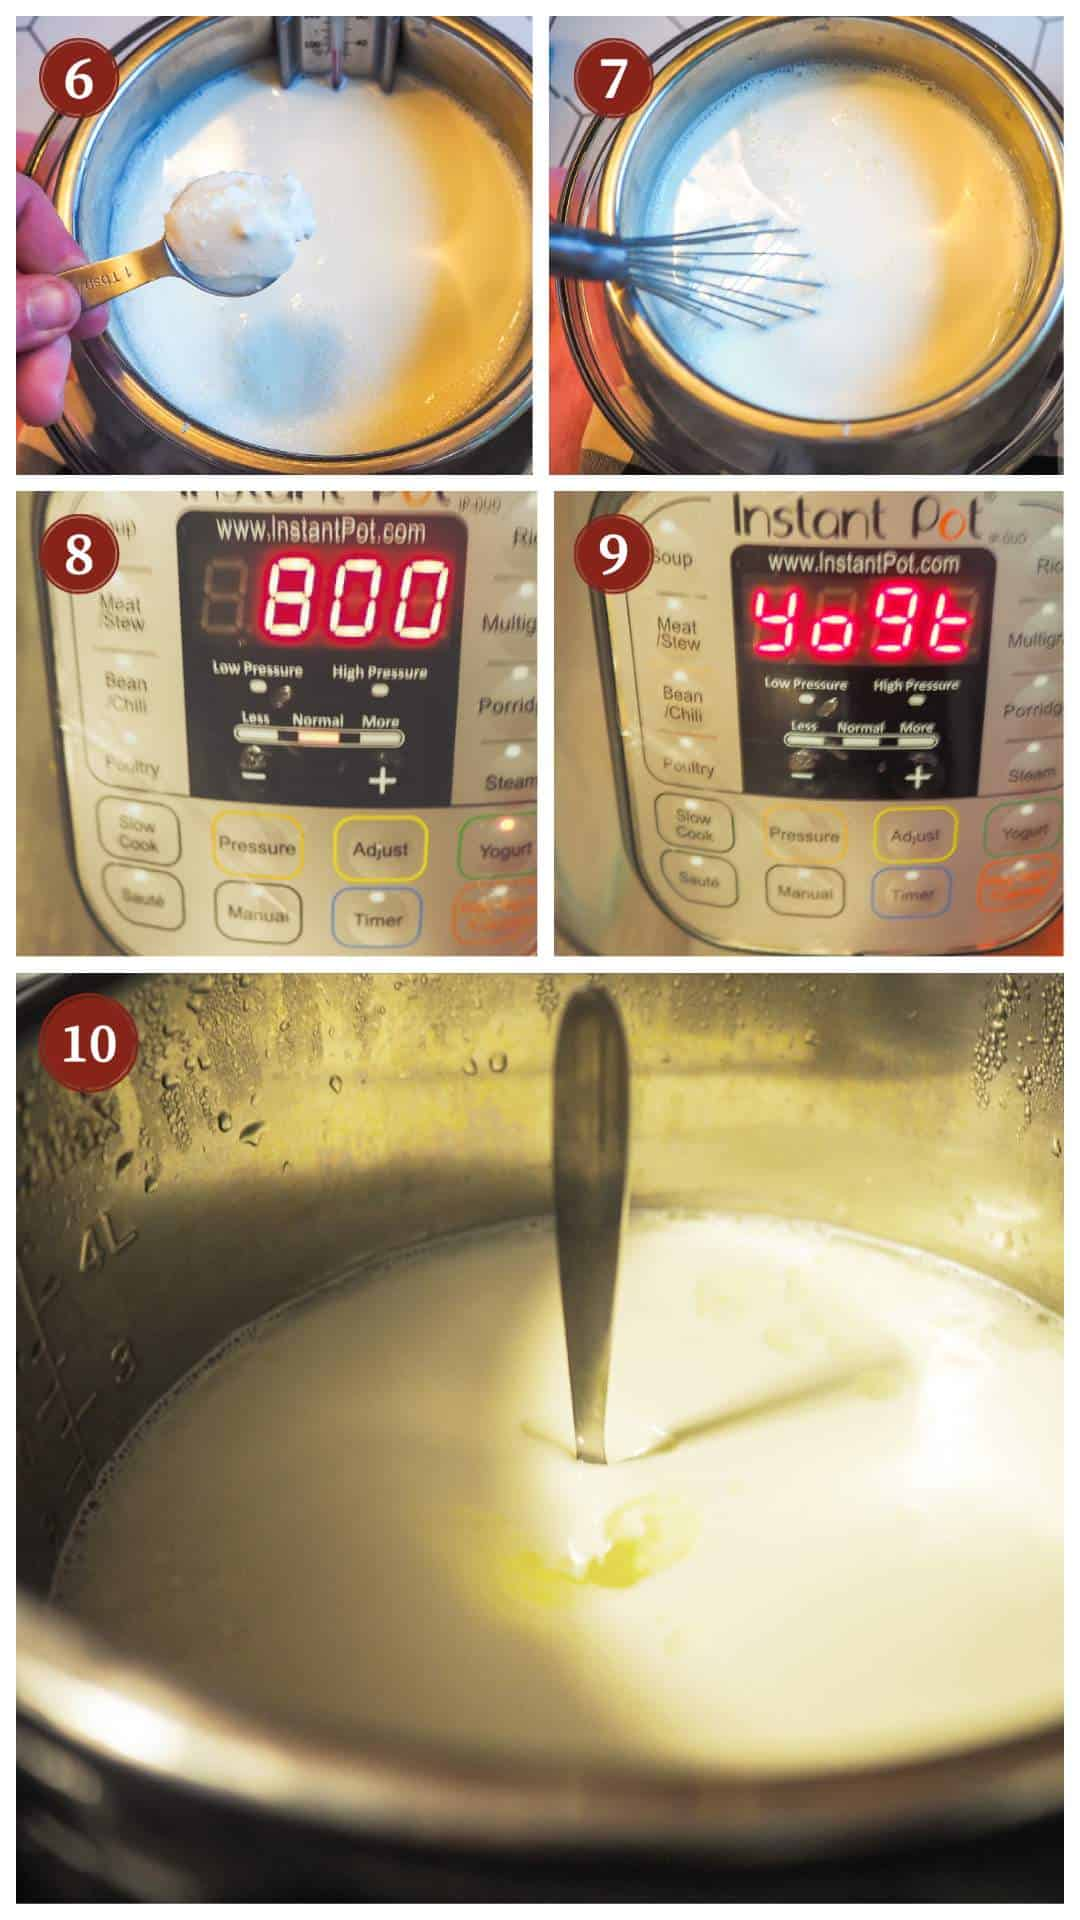 A collage of images showing the process of making yogurt in an Instant Pot, steps 6 - 10..